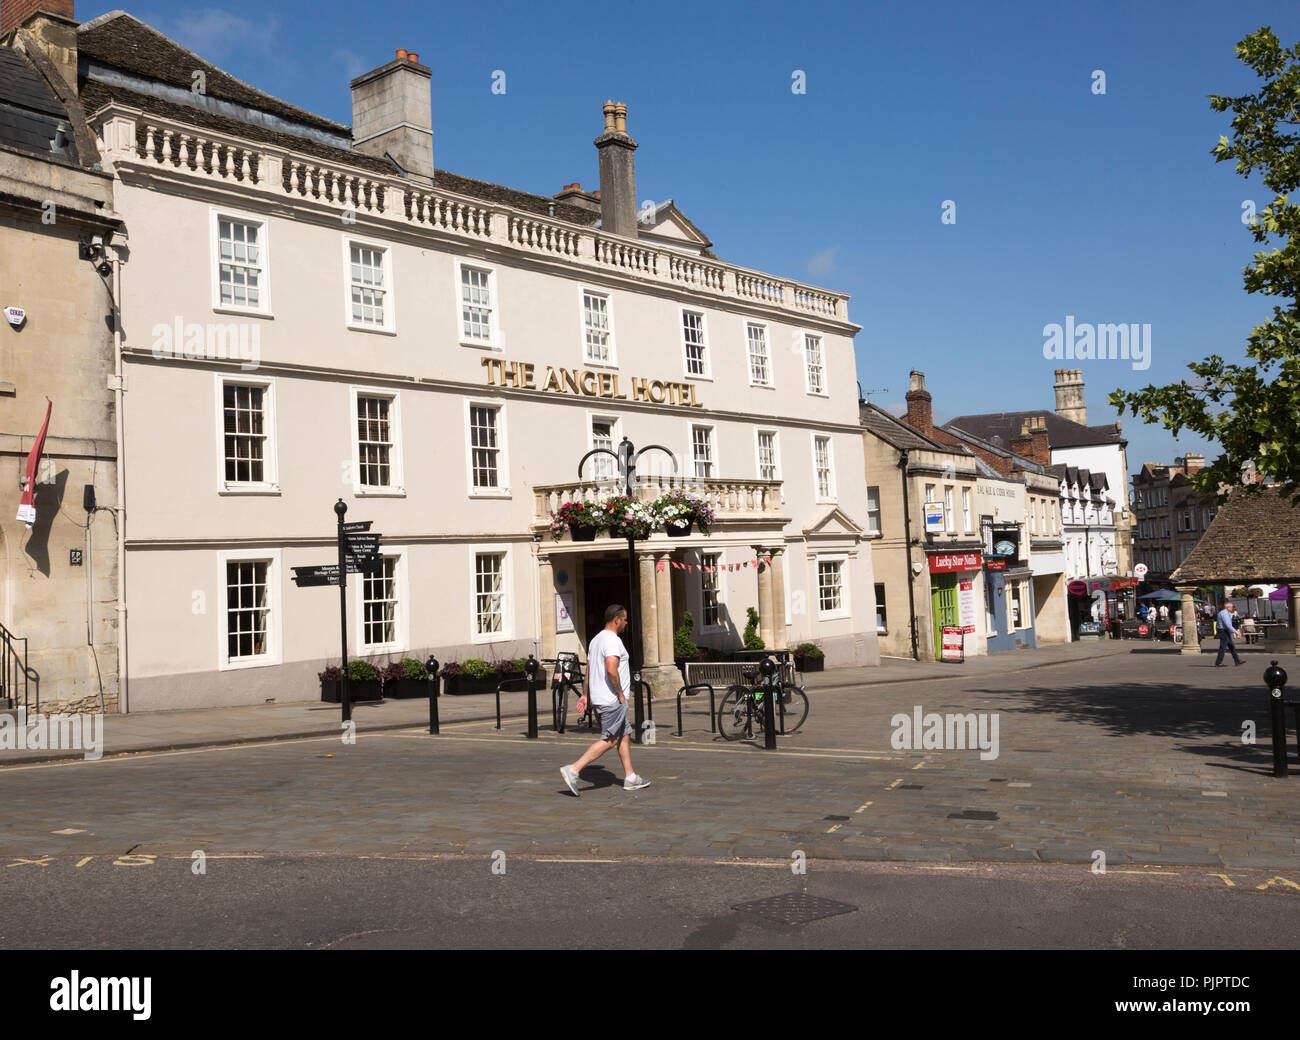 Early eighteenth century architecture, Angel Hotel in the town centre market place of Chippenham, Wiltshire, England, UK Stock Photo